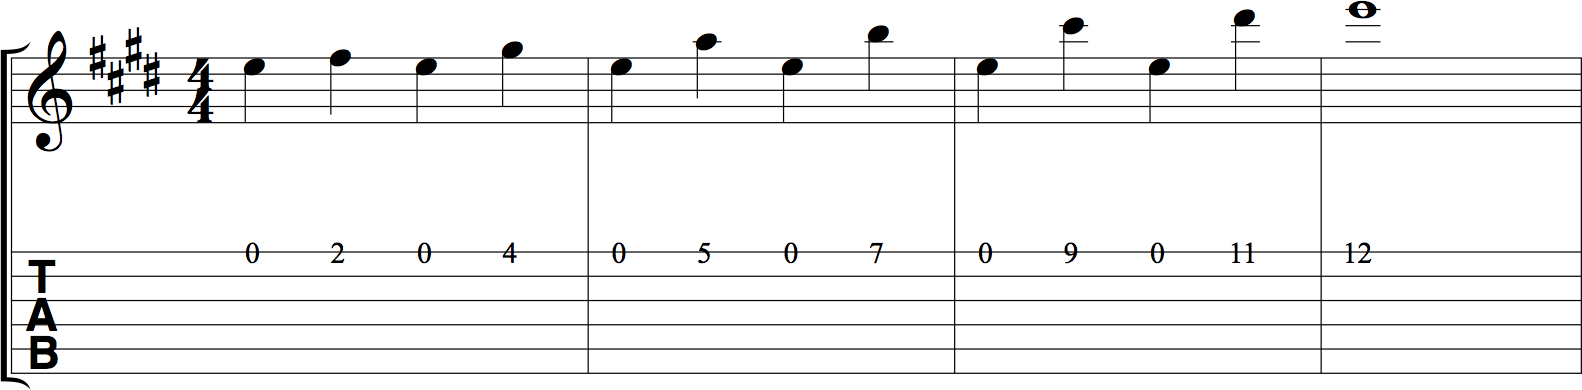 E major scale on first string, starting with open note.